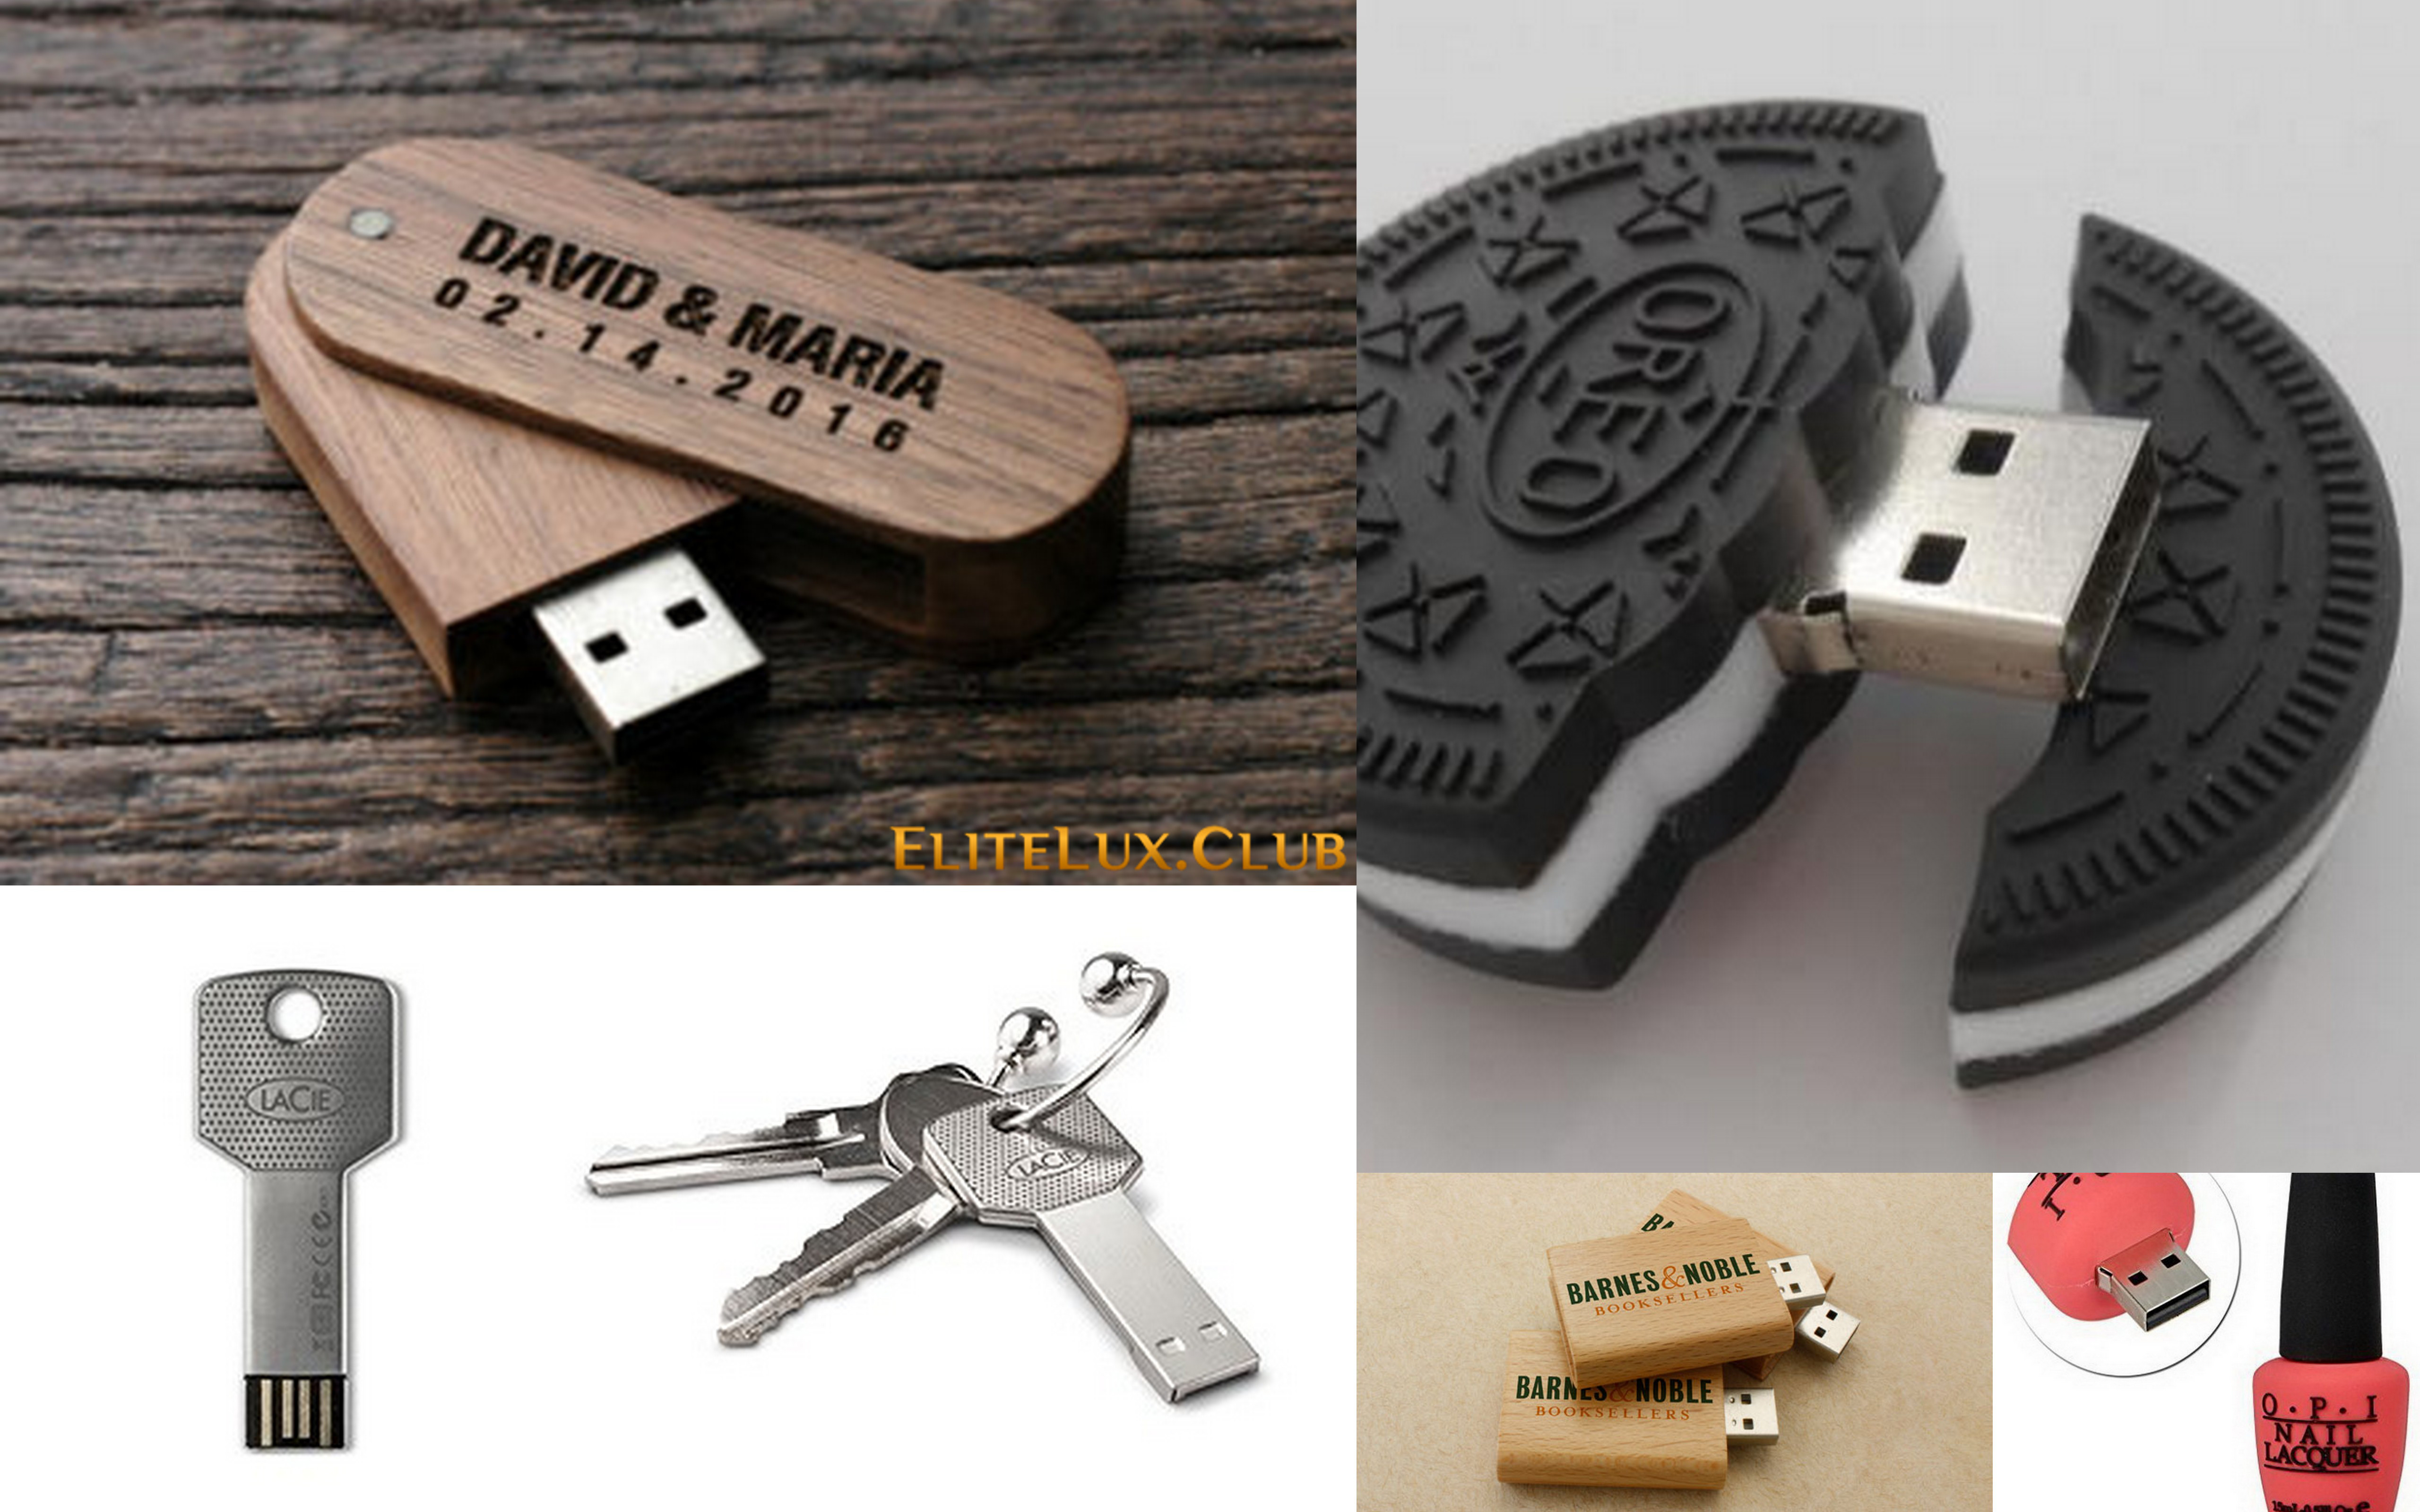 Cool Custom Printed USB Drives You May Want To See | Funny, Classy, Luxurious, Fancy Or Kinky ? Discover Today !